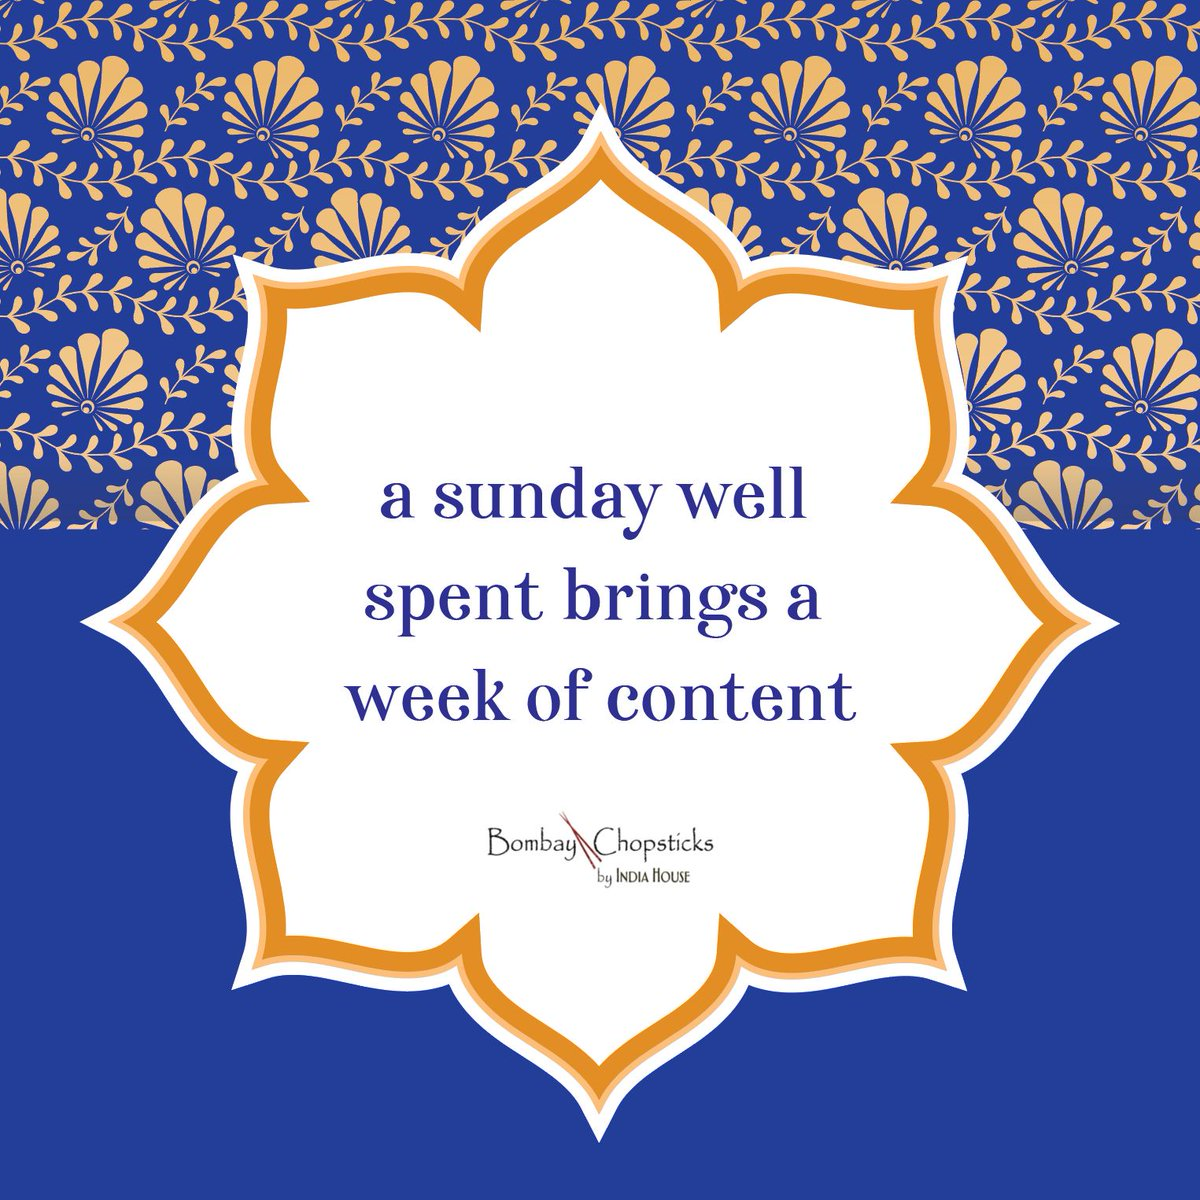 How are you spending your Sunday? Tell us in the comments! Bonus points if it involves take-out from Bombay Chopsticks! 🥢😜 . . #bombaychopsticks #bombaychopsticksbyindiahouse #IndianFood #ChineseFood #IndoChineseFusion #NapervilleIL #NapervilleRestaurant #NapervilleBusiness ... https://t.co/ca17Y3J8iB